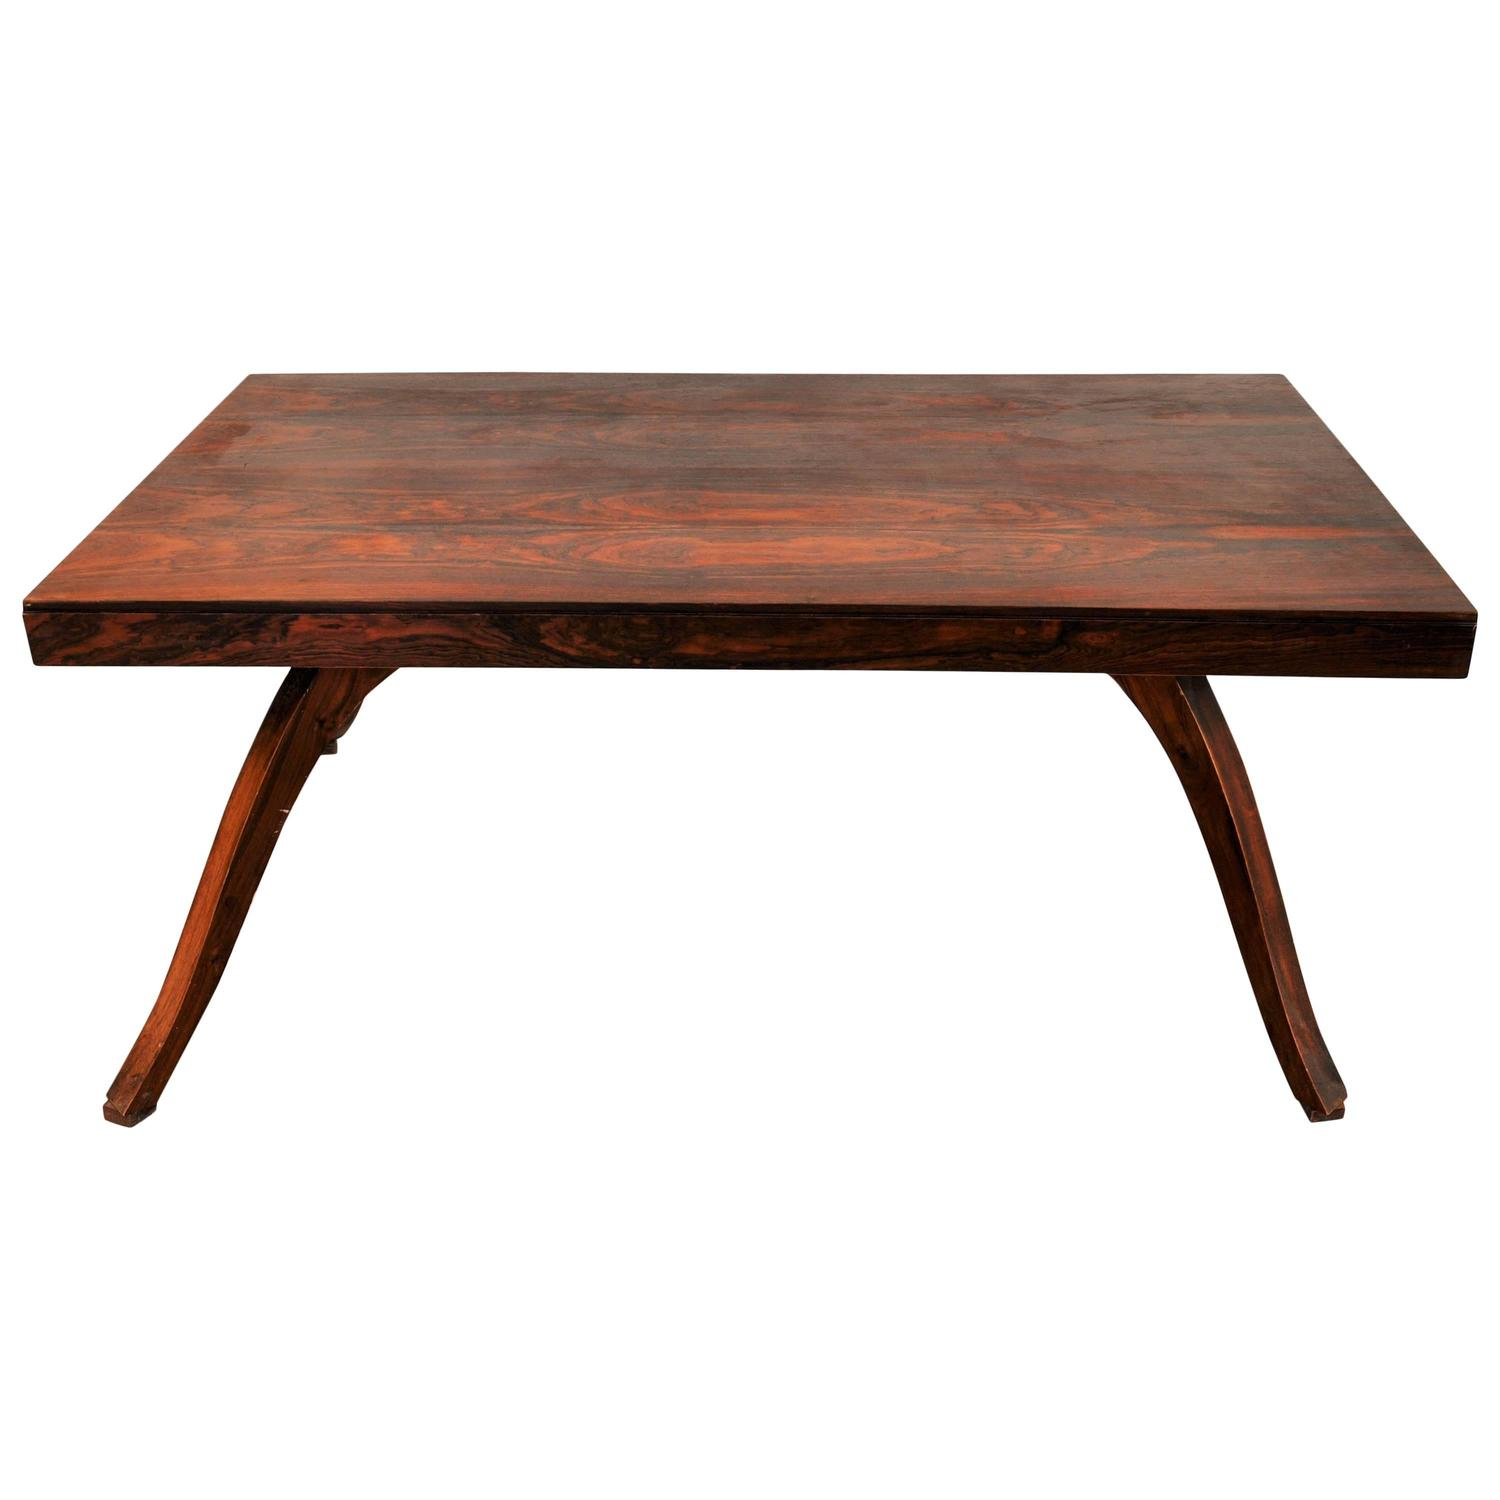 Art Deco Dining Table Made Of Rosewood For Sale At 1stdibs